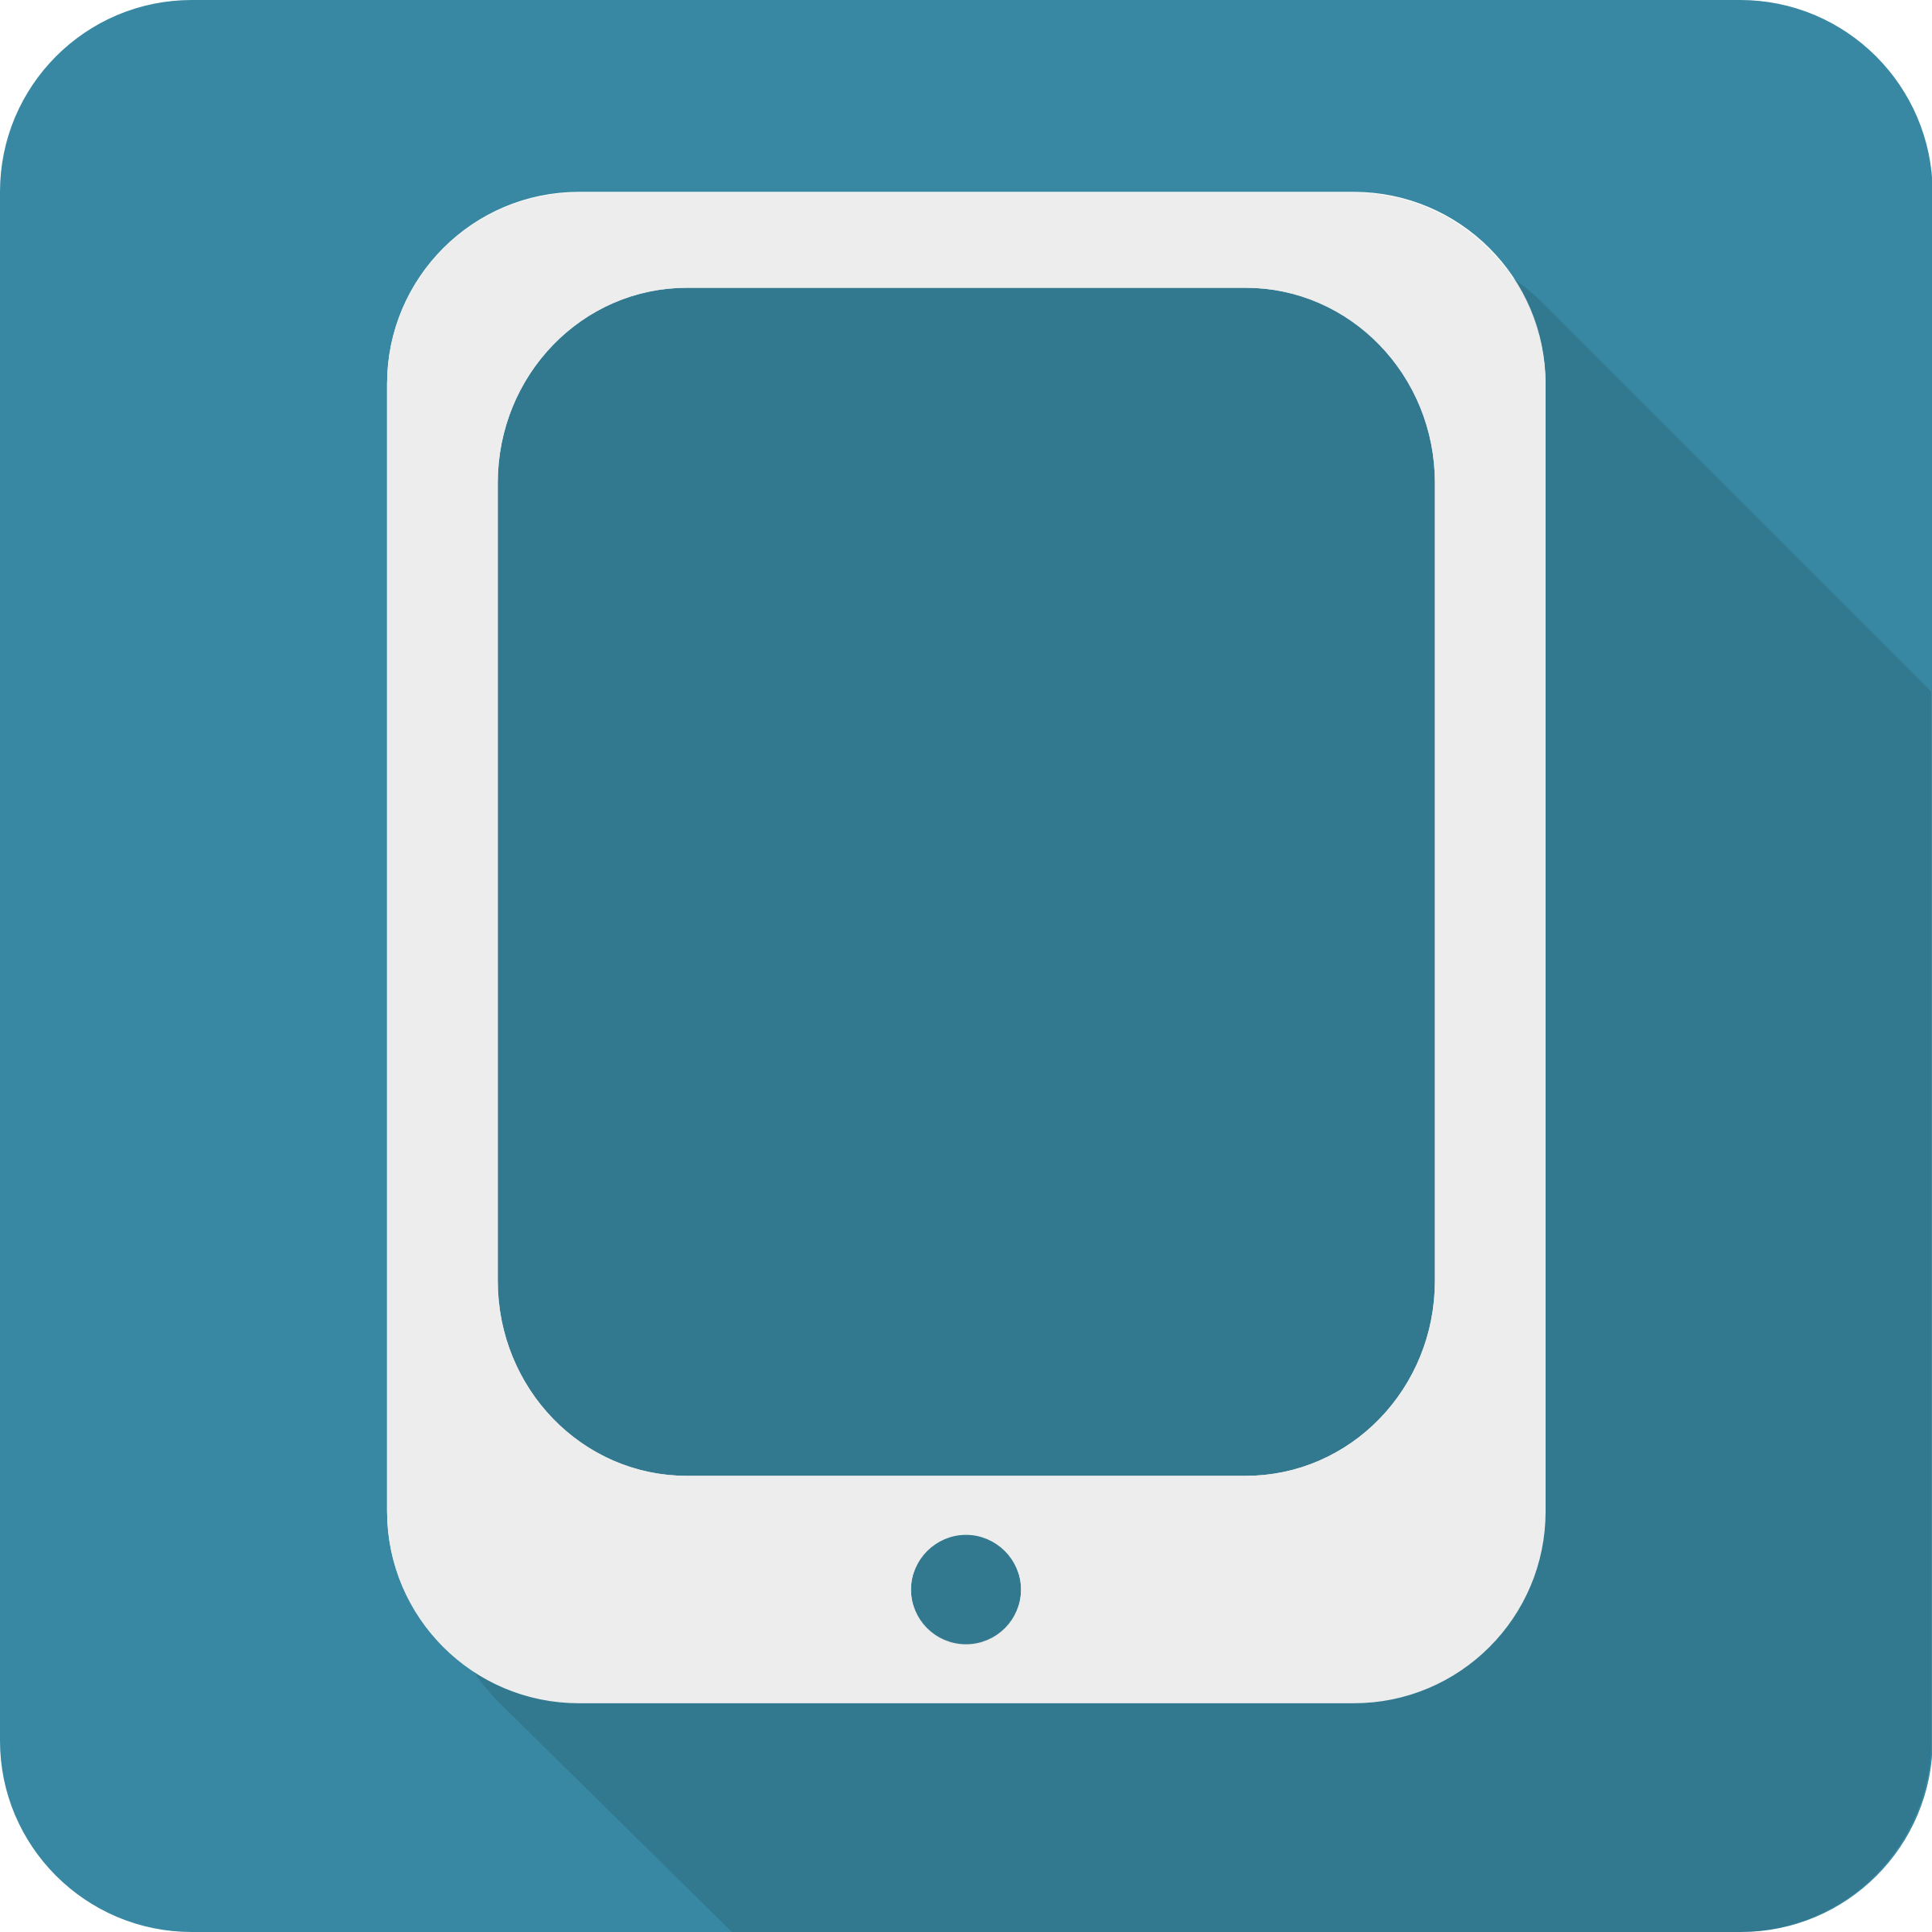 Clipart Shadowed Modern Minimalist Mobile Icon